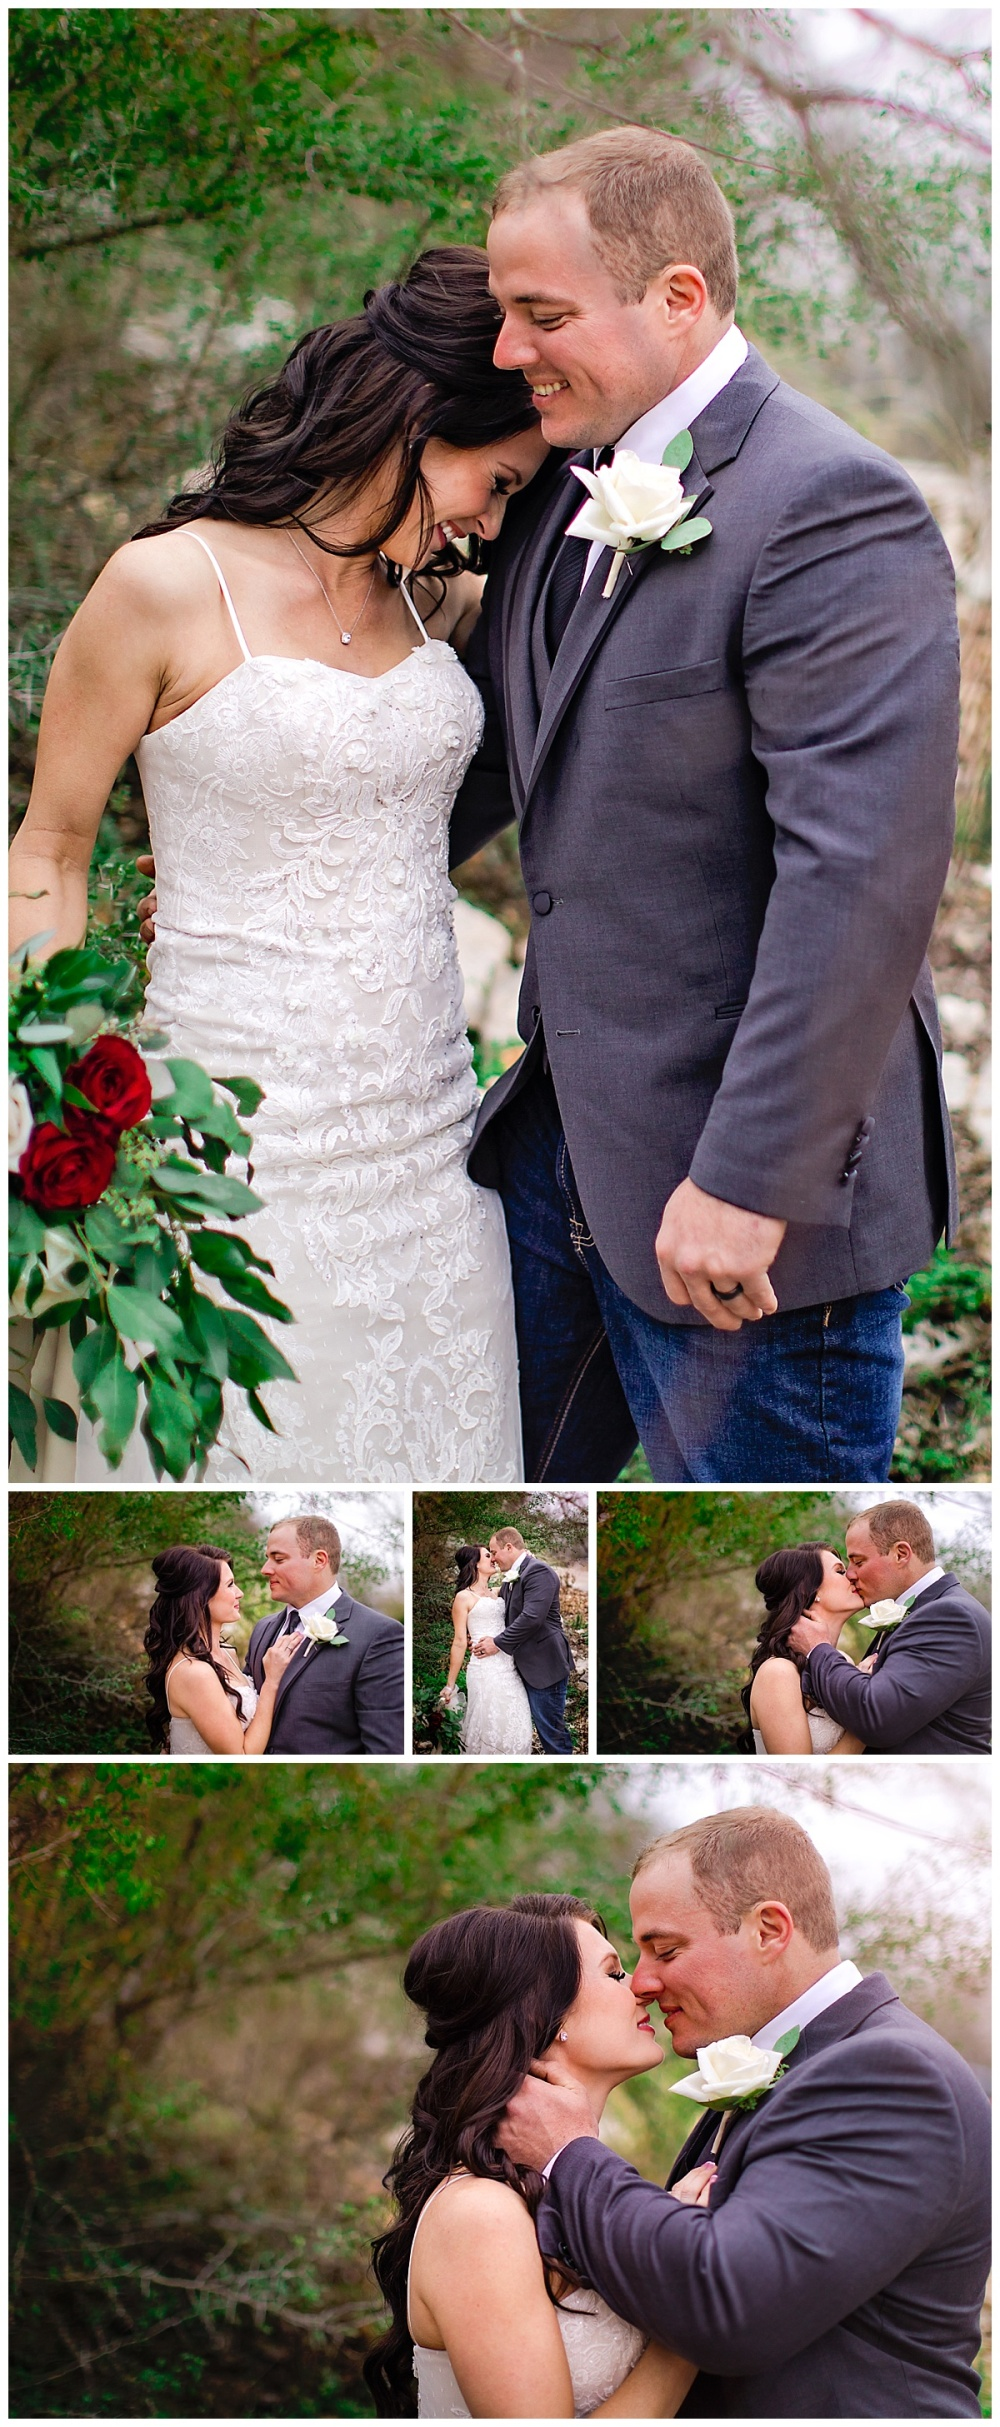 Carly-Barton-Photography-Geronimo-Oaks-Wedding-Venue-Texas-Hill-Country-Ronnie-Sarah_0070.jpg